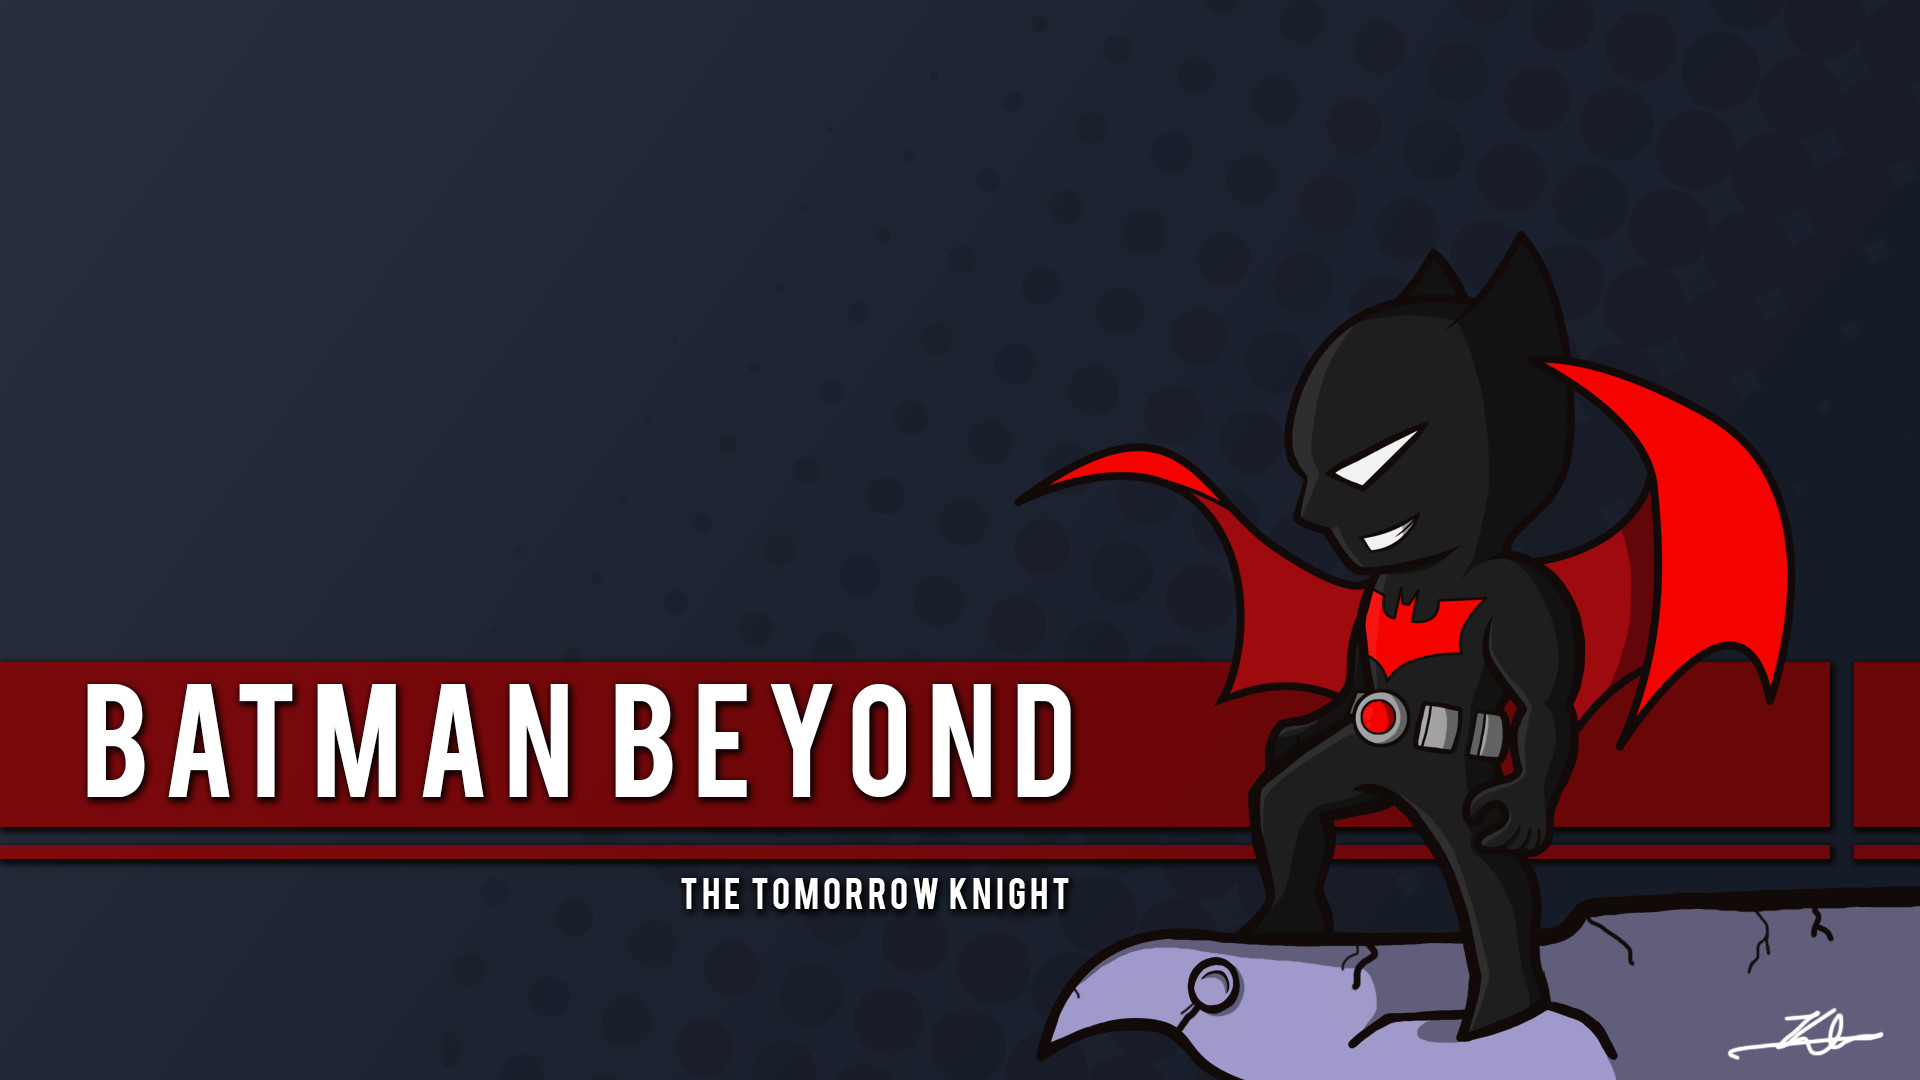 1920x1080 I'm a huge batman Beyond fan. Drew him in the classic Jim Lee pose.